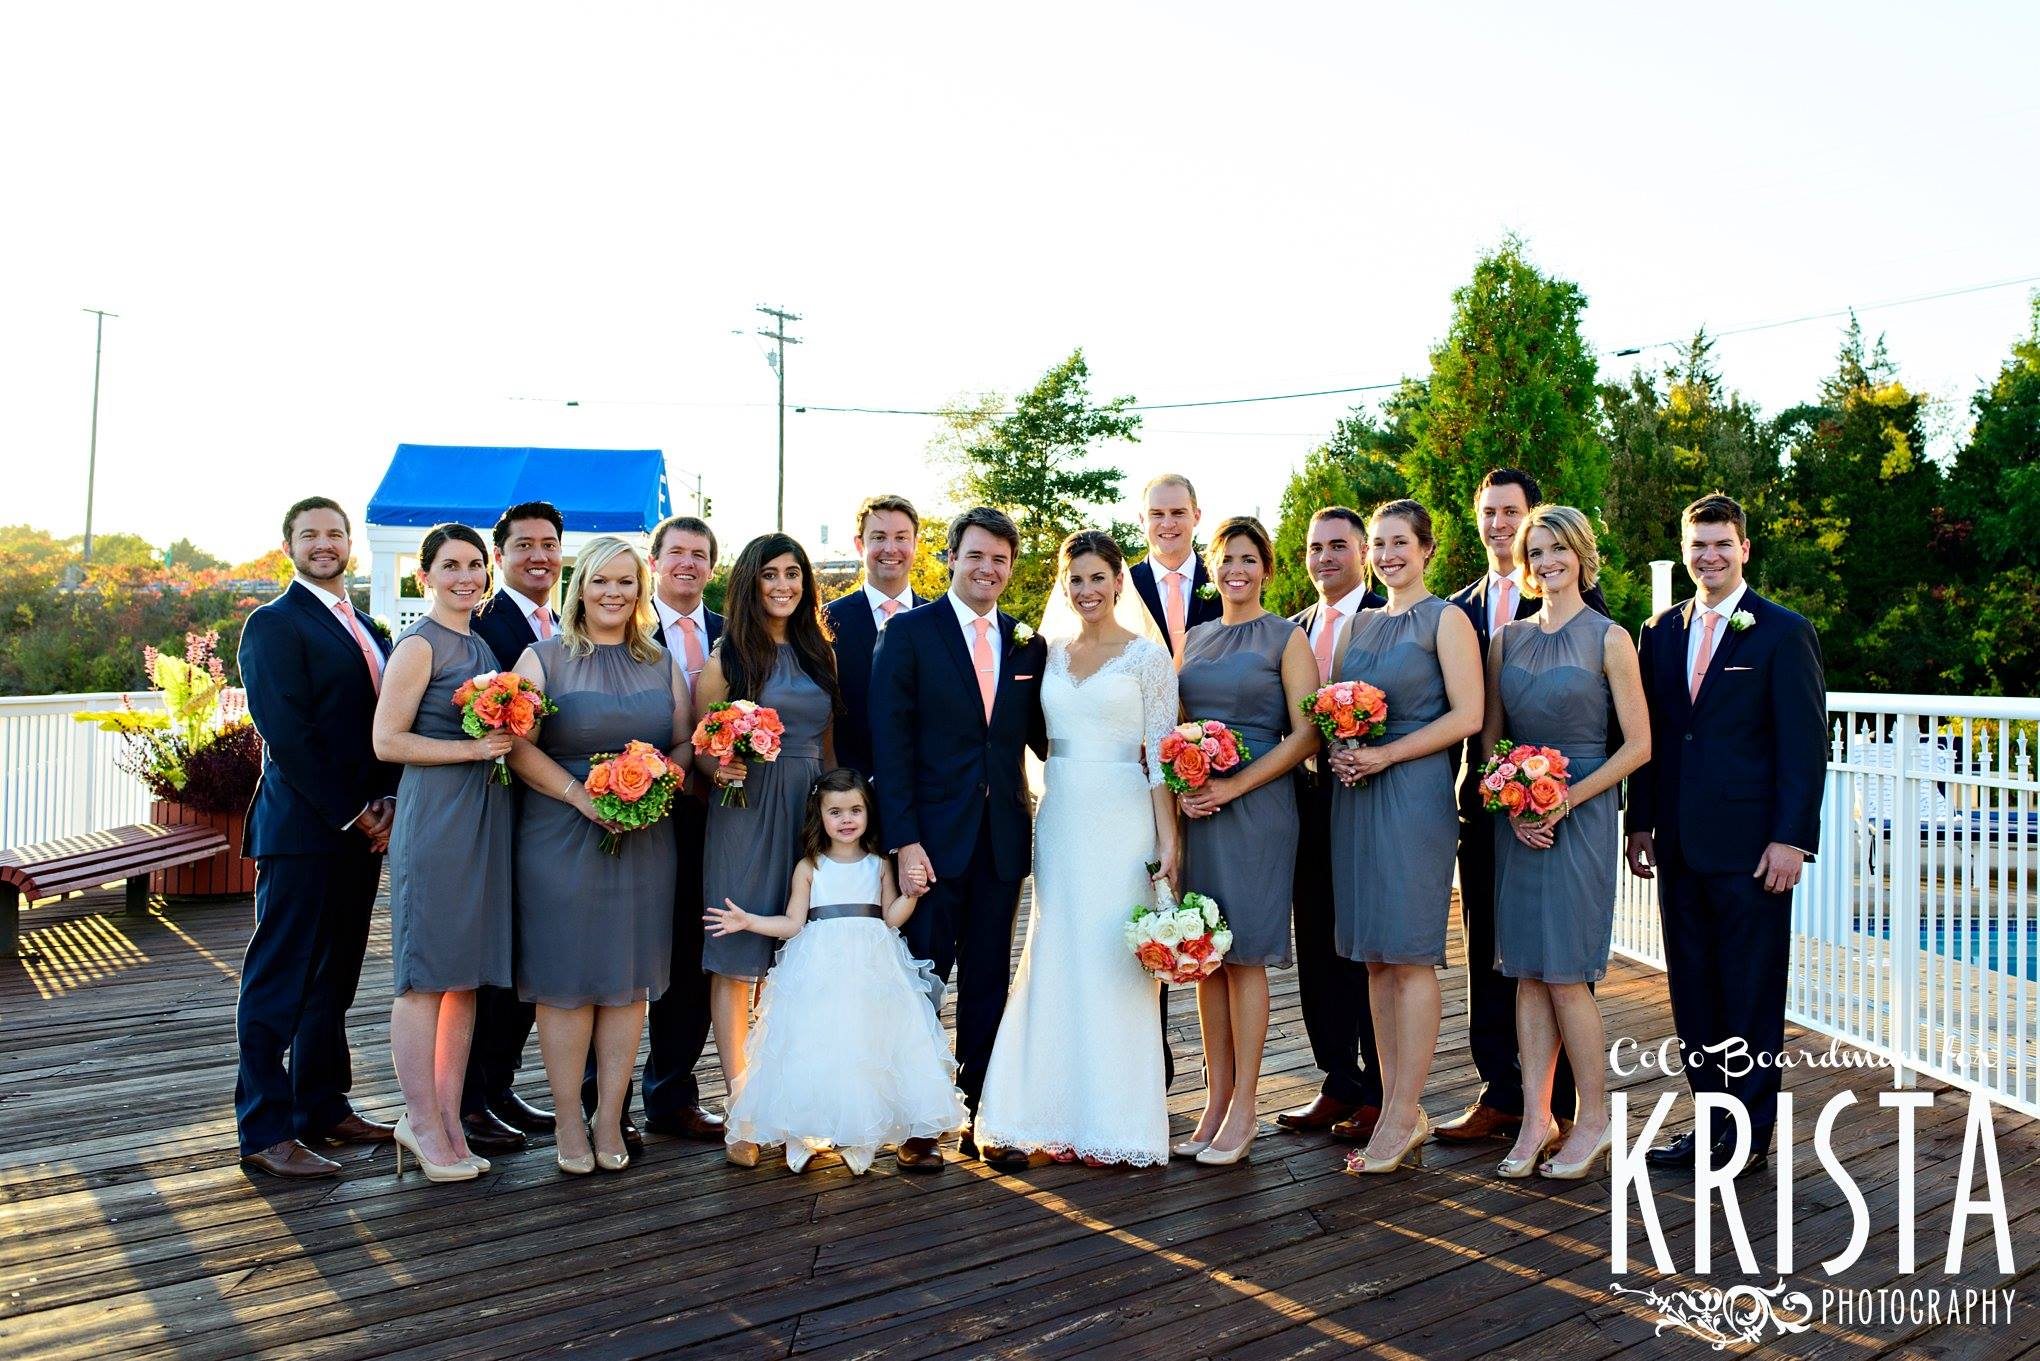 wedding-party-photo-on-dock-wed-on-canvas-coral-bridal-bouquet-gray-bridesmaid-dresses-wentworth-by-the-sea-wedding-ben-keys